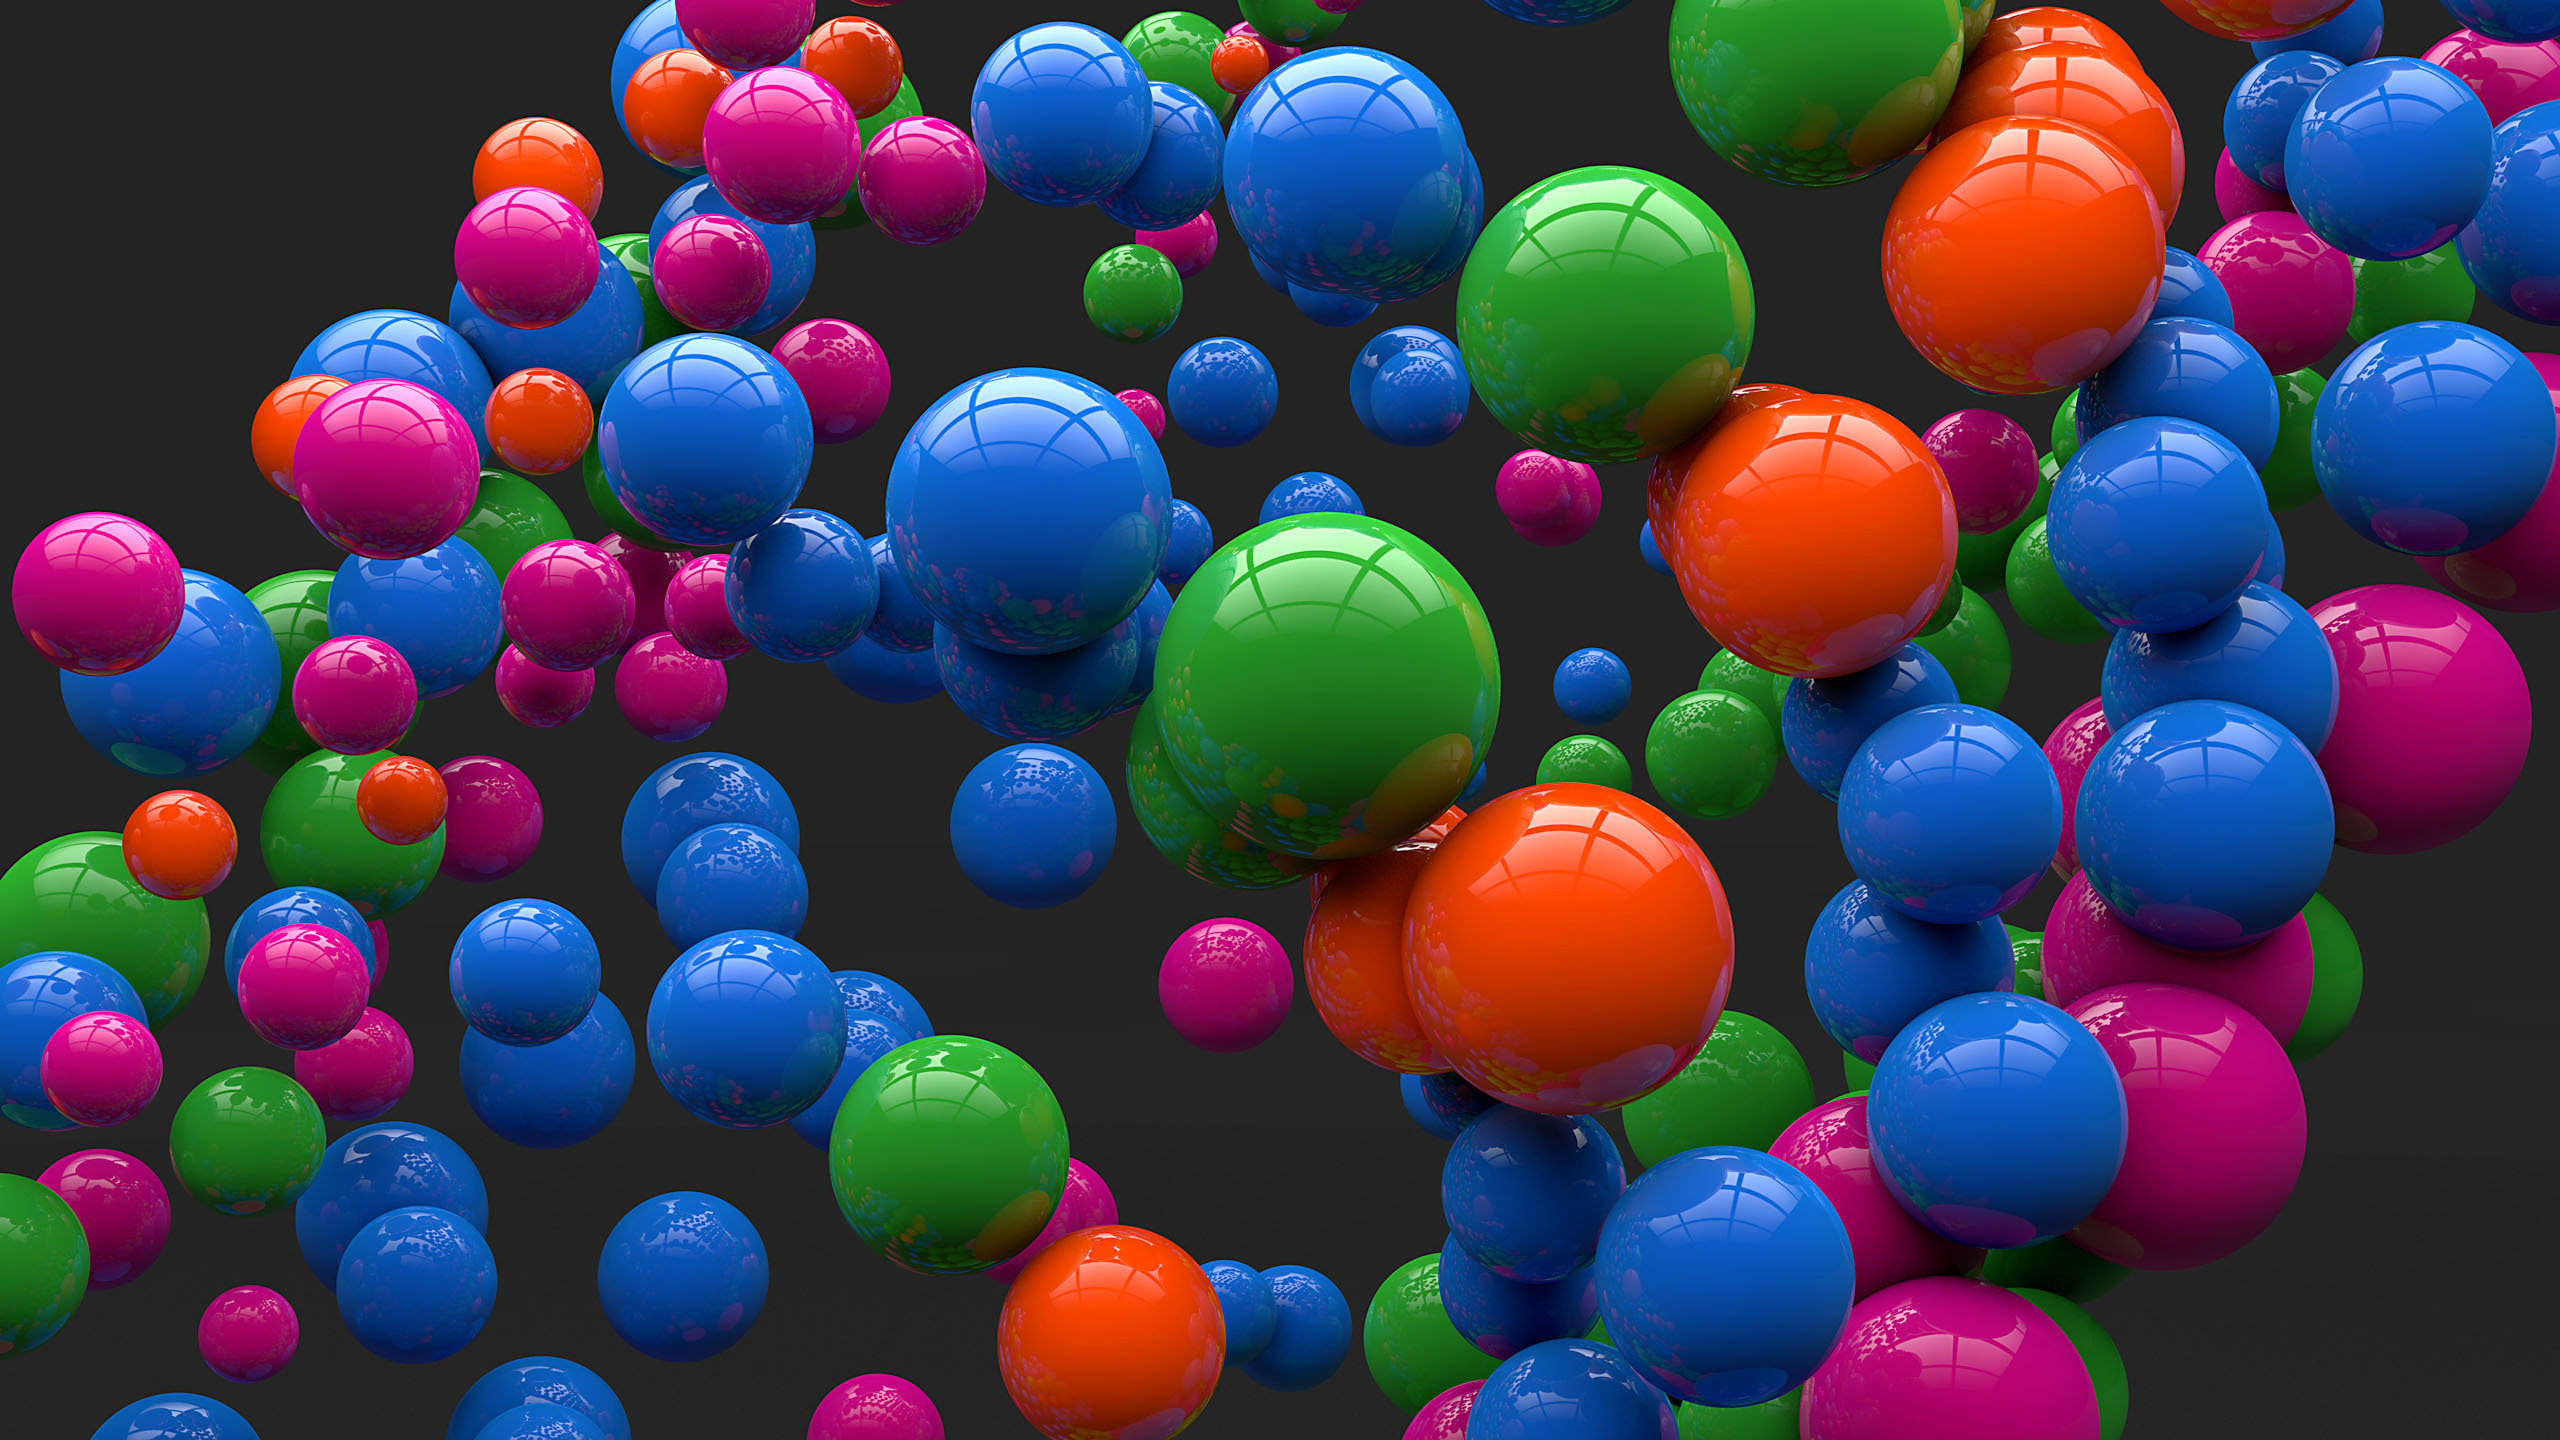 Free Abstract bubble high quality wallpaper ID:374628 for hd 2560x1440 desktop